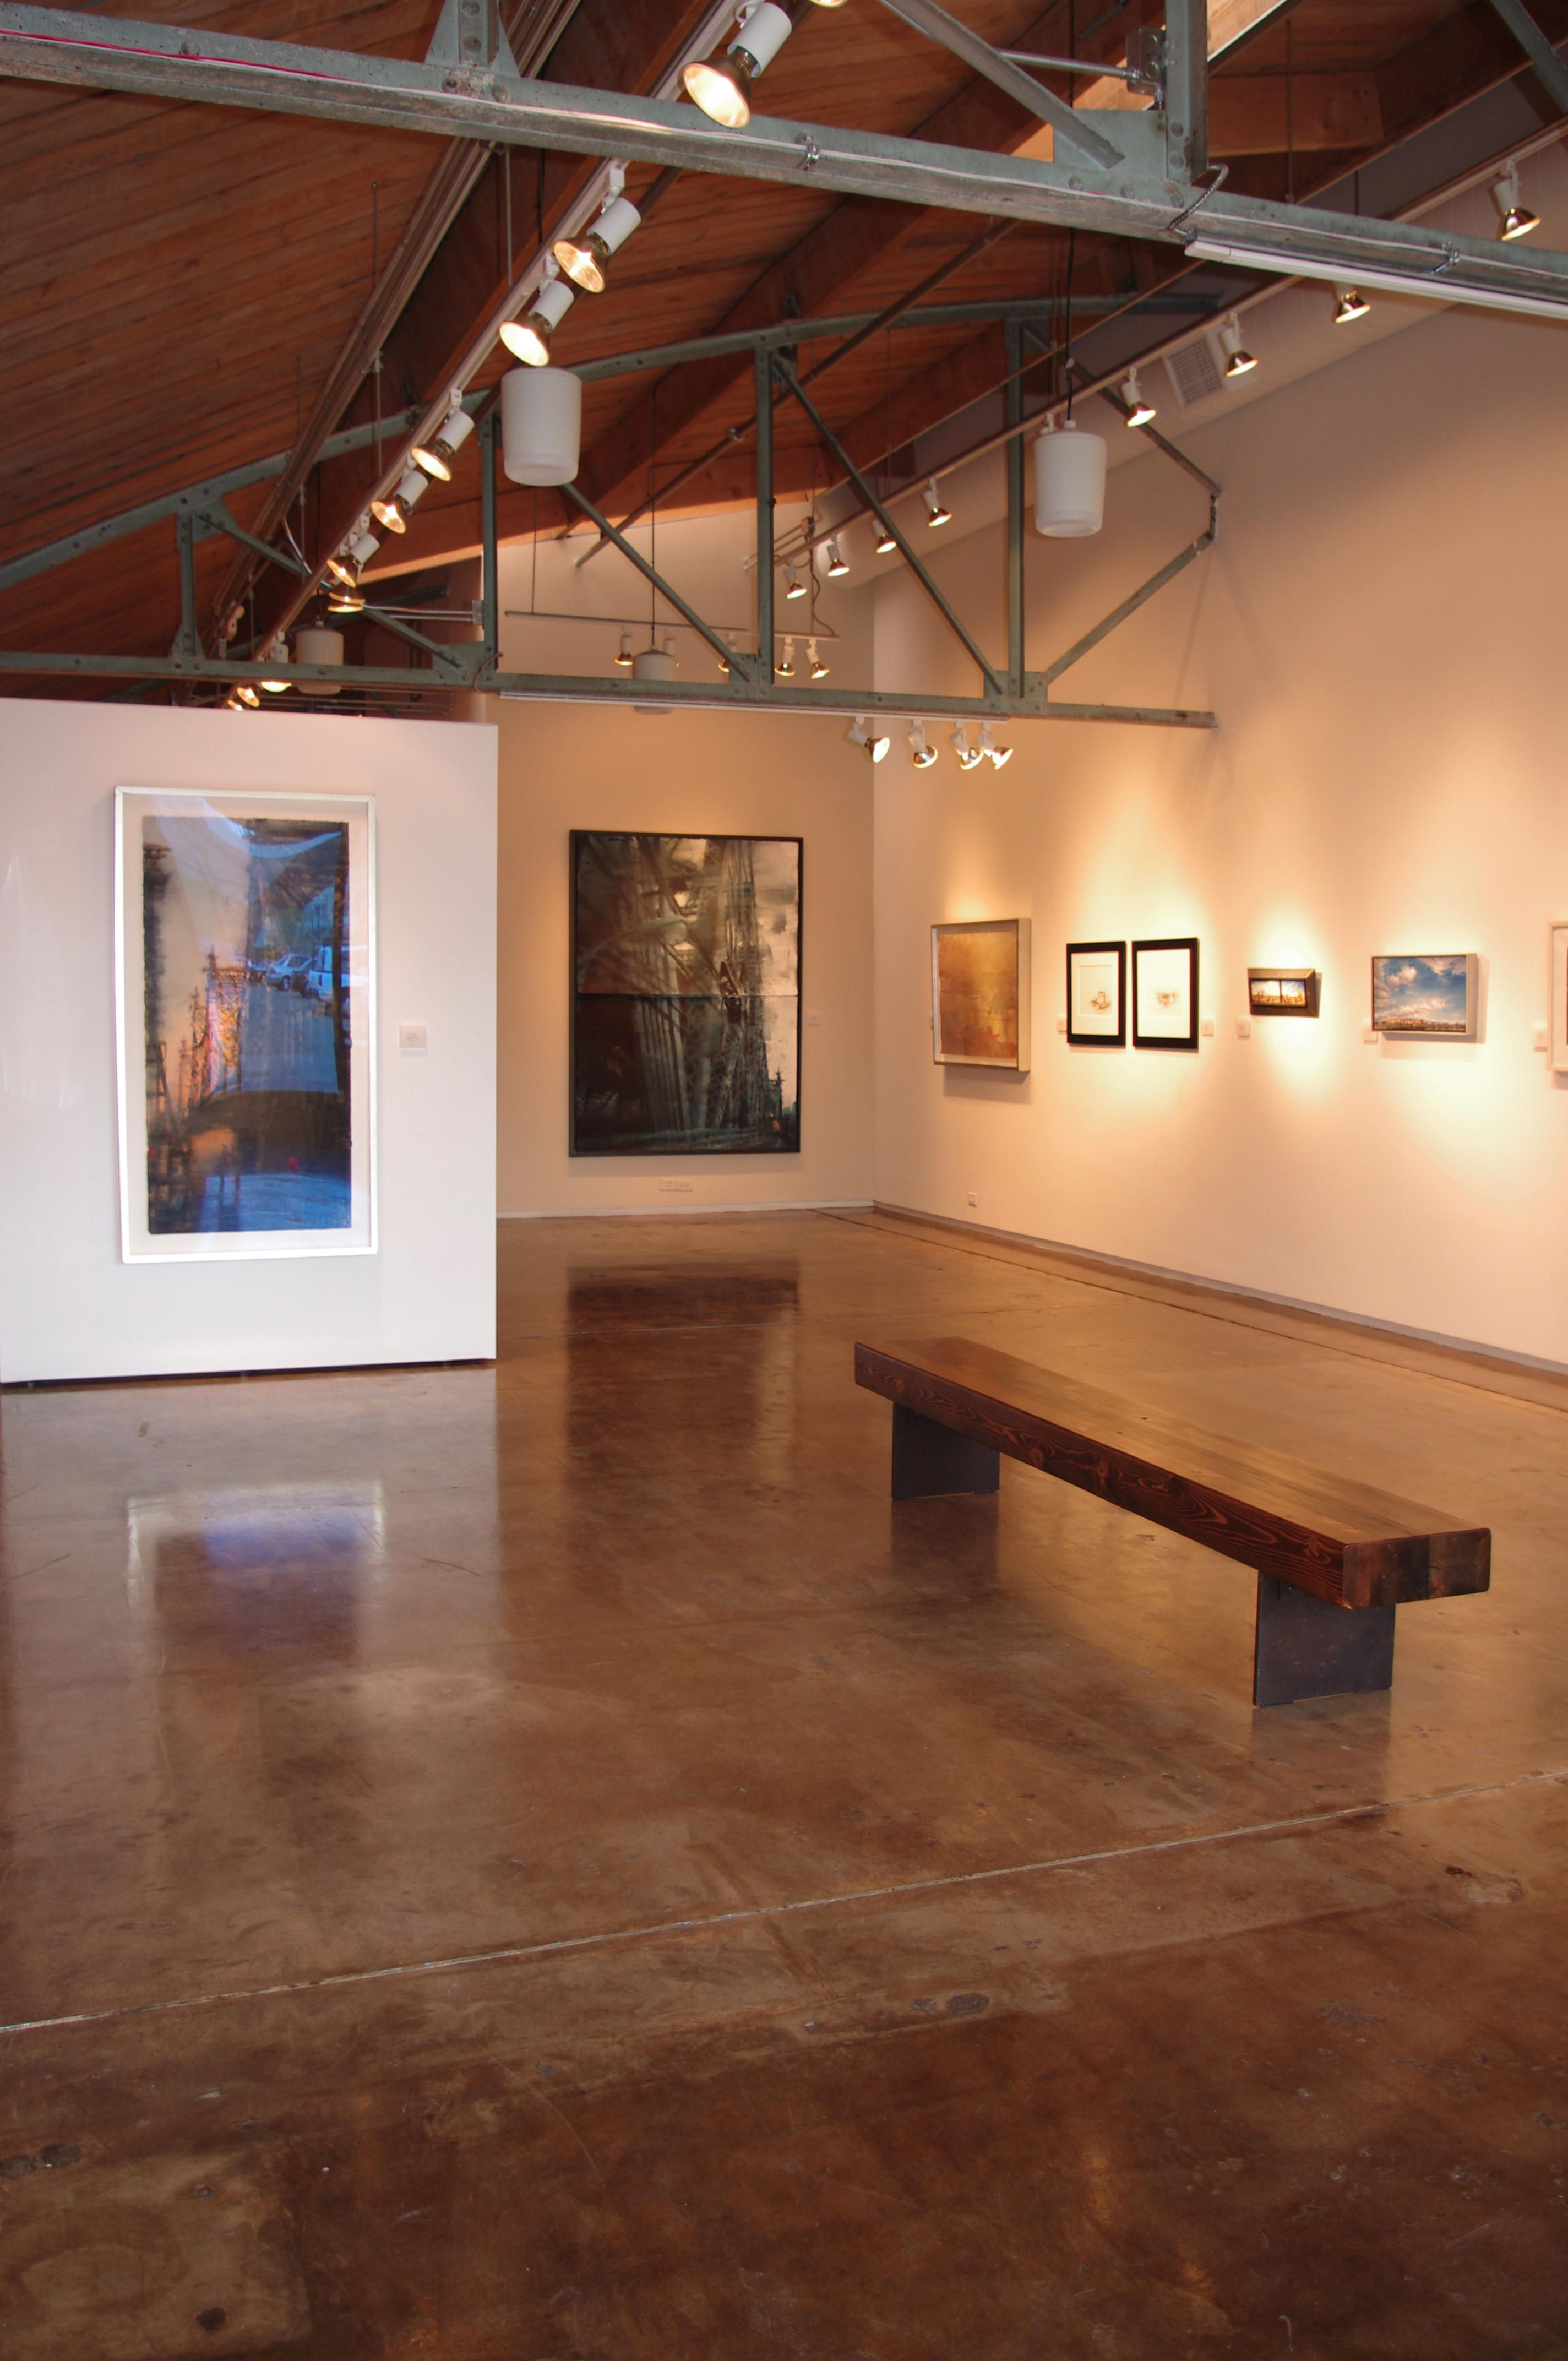 Art Gallery Interiors Hours Tuesday Friday 11 6 Saturday 11